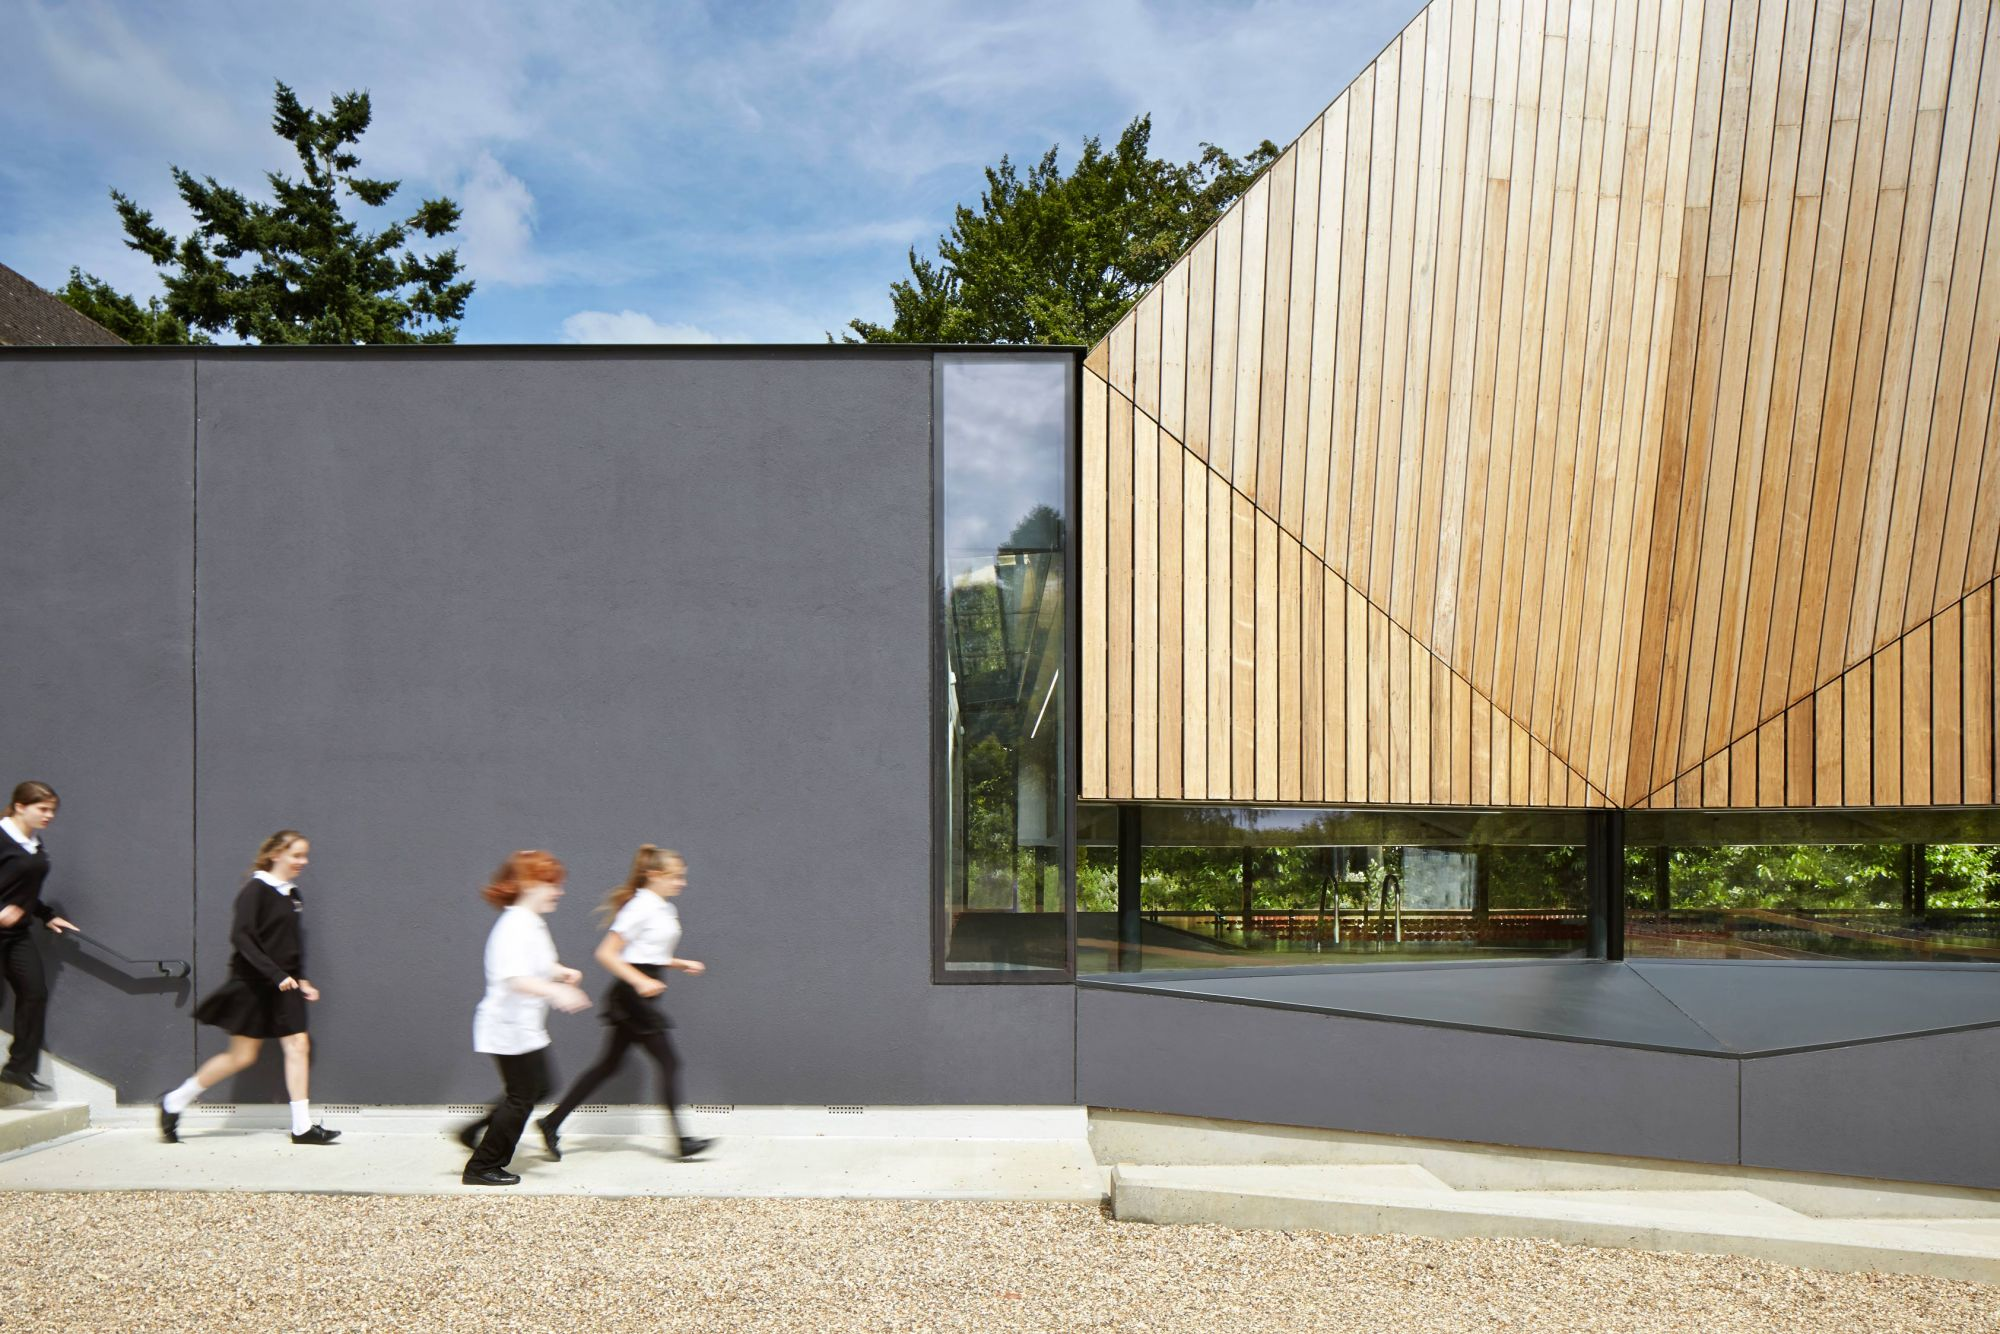 001_Alfriston-School_Duggan-Morris-Architects_Buckinghamshire_004